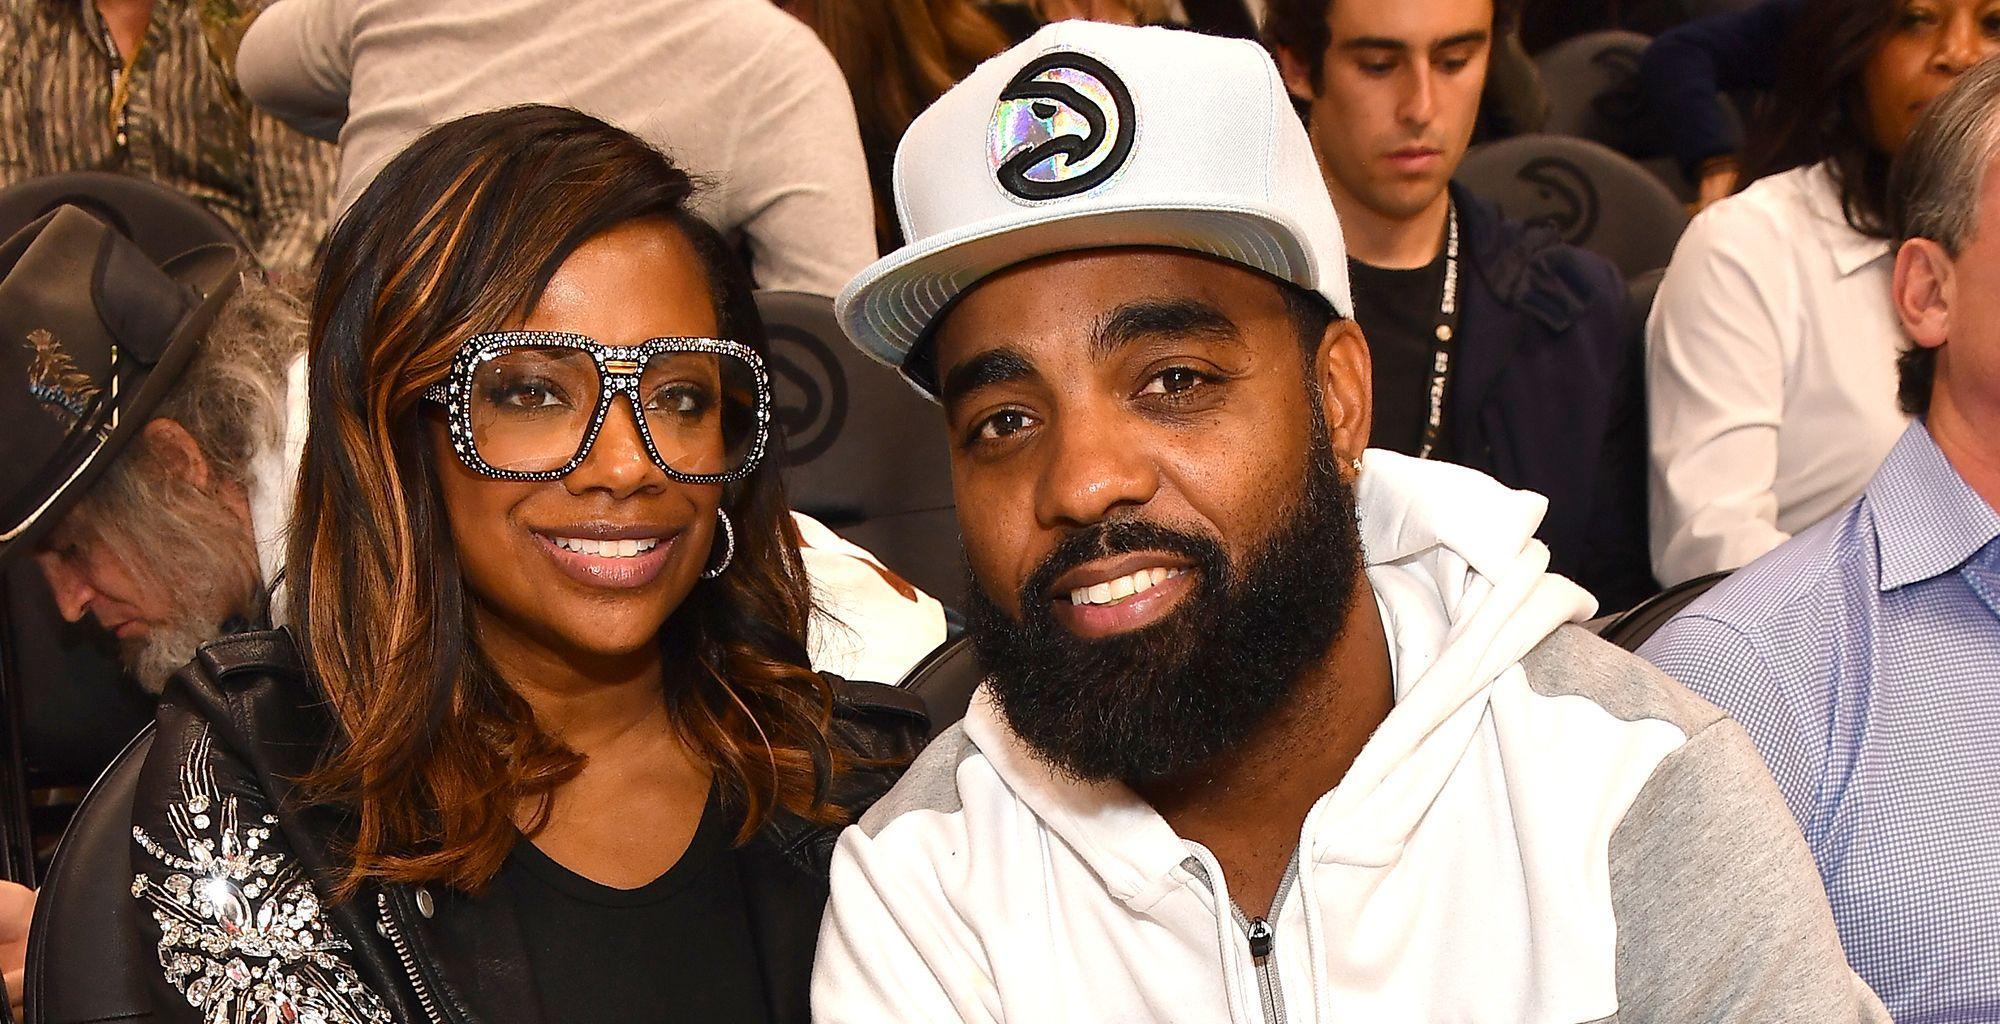 Kandi Burruss Shares A Funny Photo With Todd Tucker And Their Son, Ace - See The Family Pic That Will Have Todd's Homies Talking!